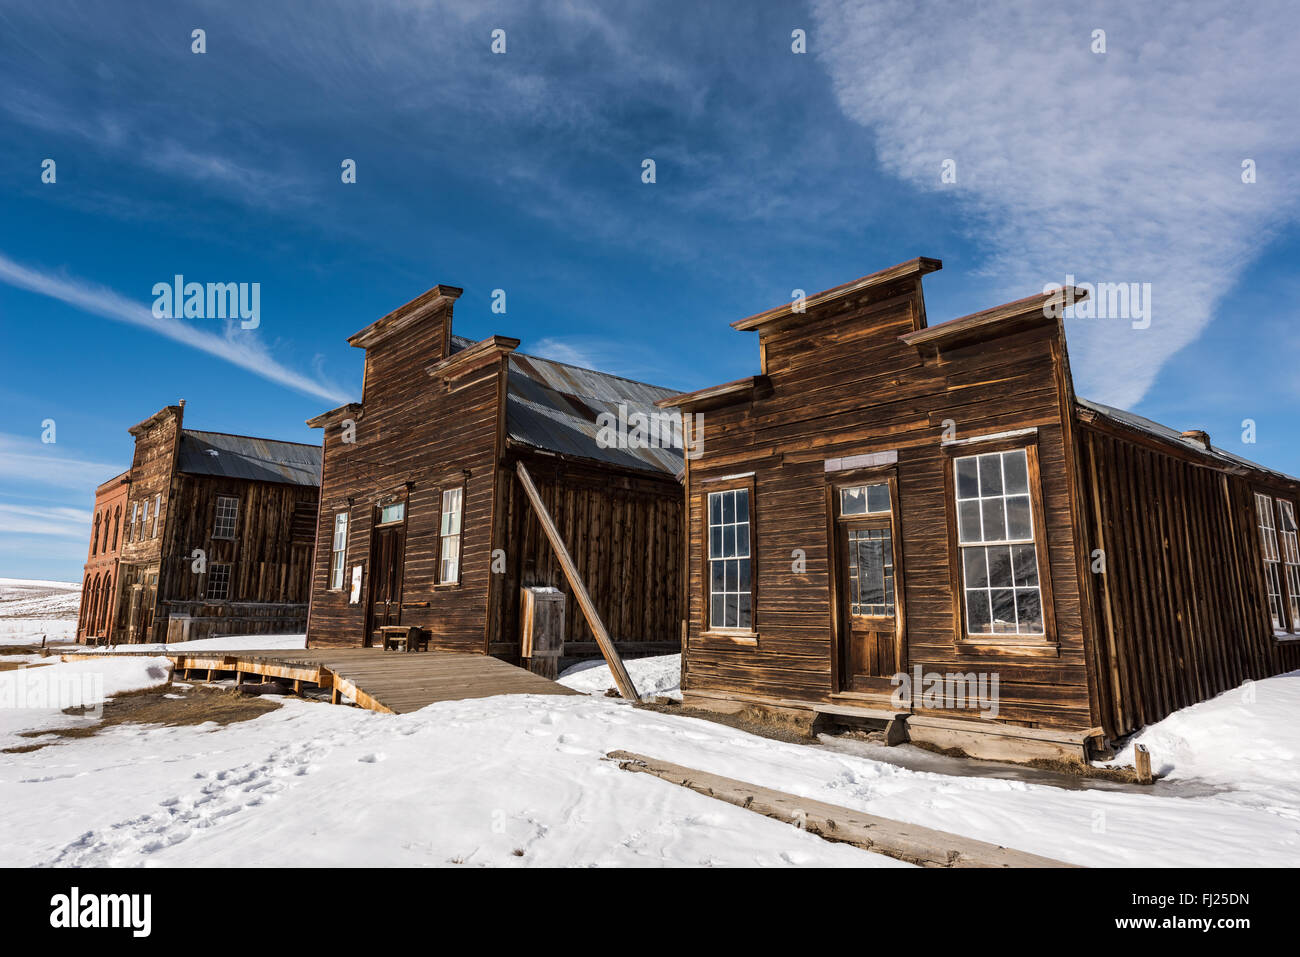 Buildings of Bodie ghost town. - Stock Image